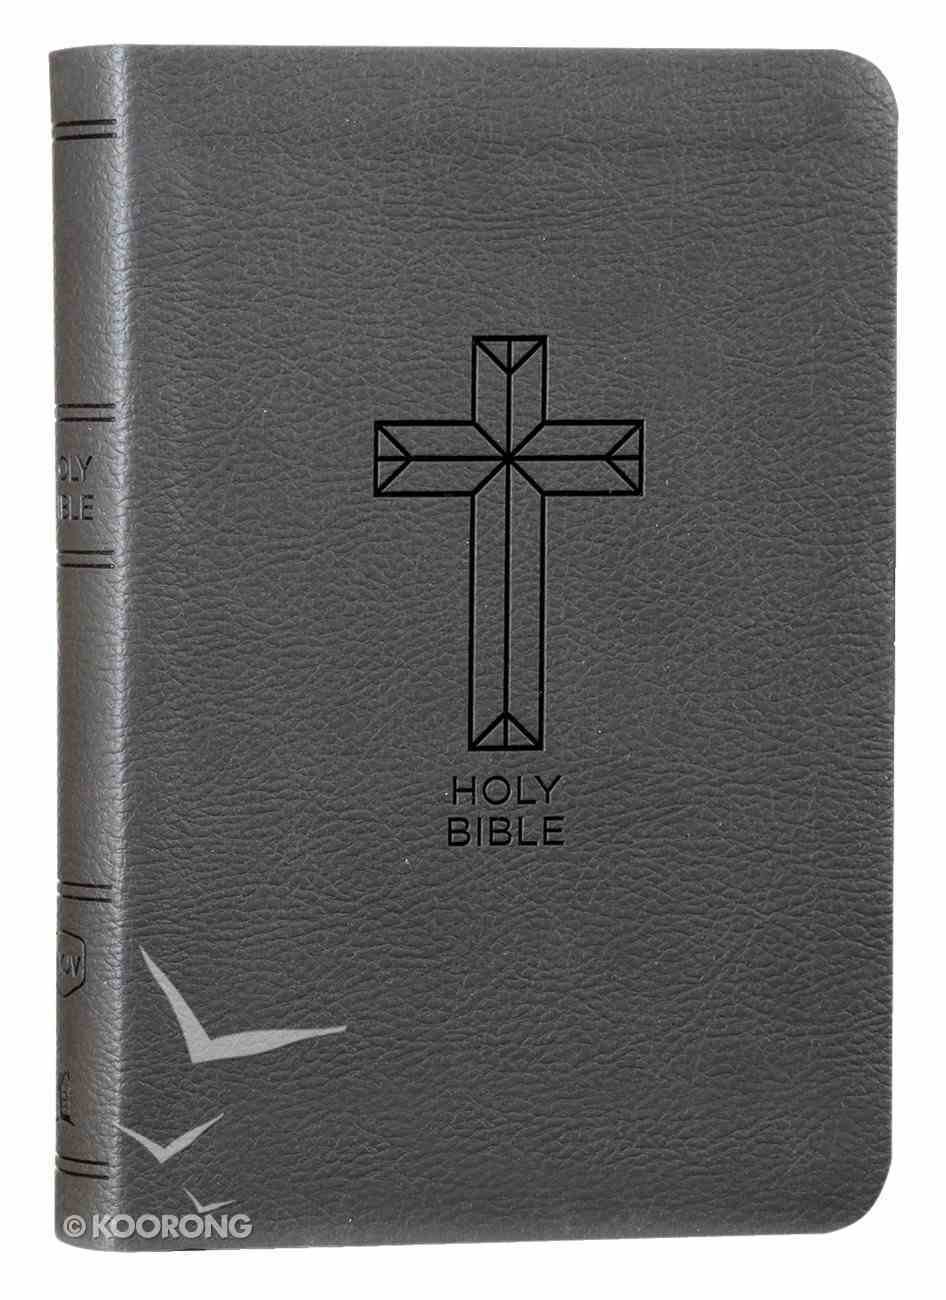 NKJV Value Thinline Bible Compact Charcoal (Red Letter Edition) Premium Imitation Leather